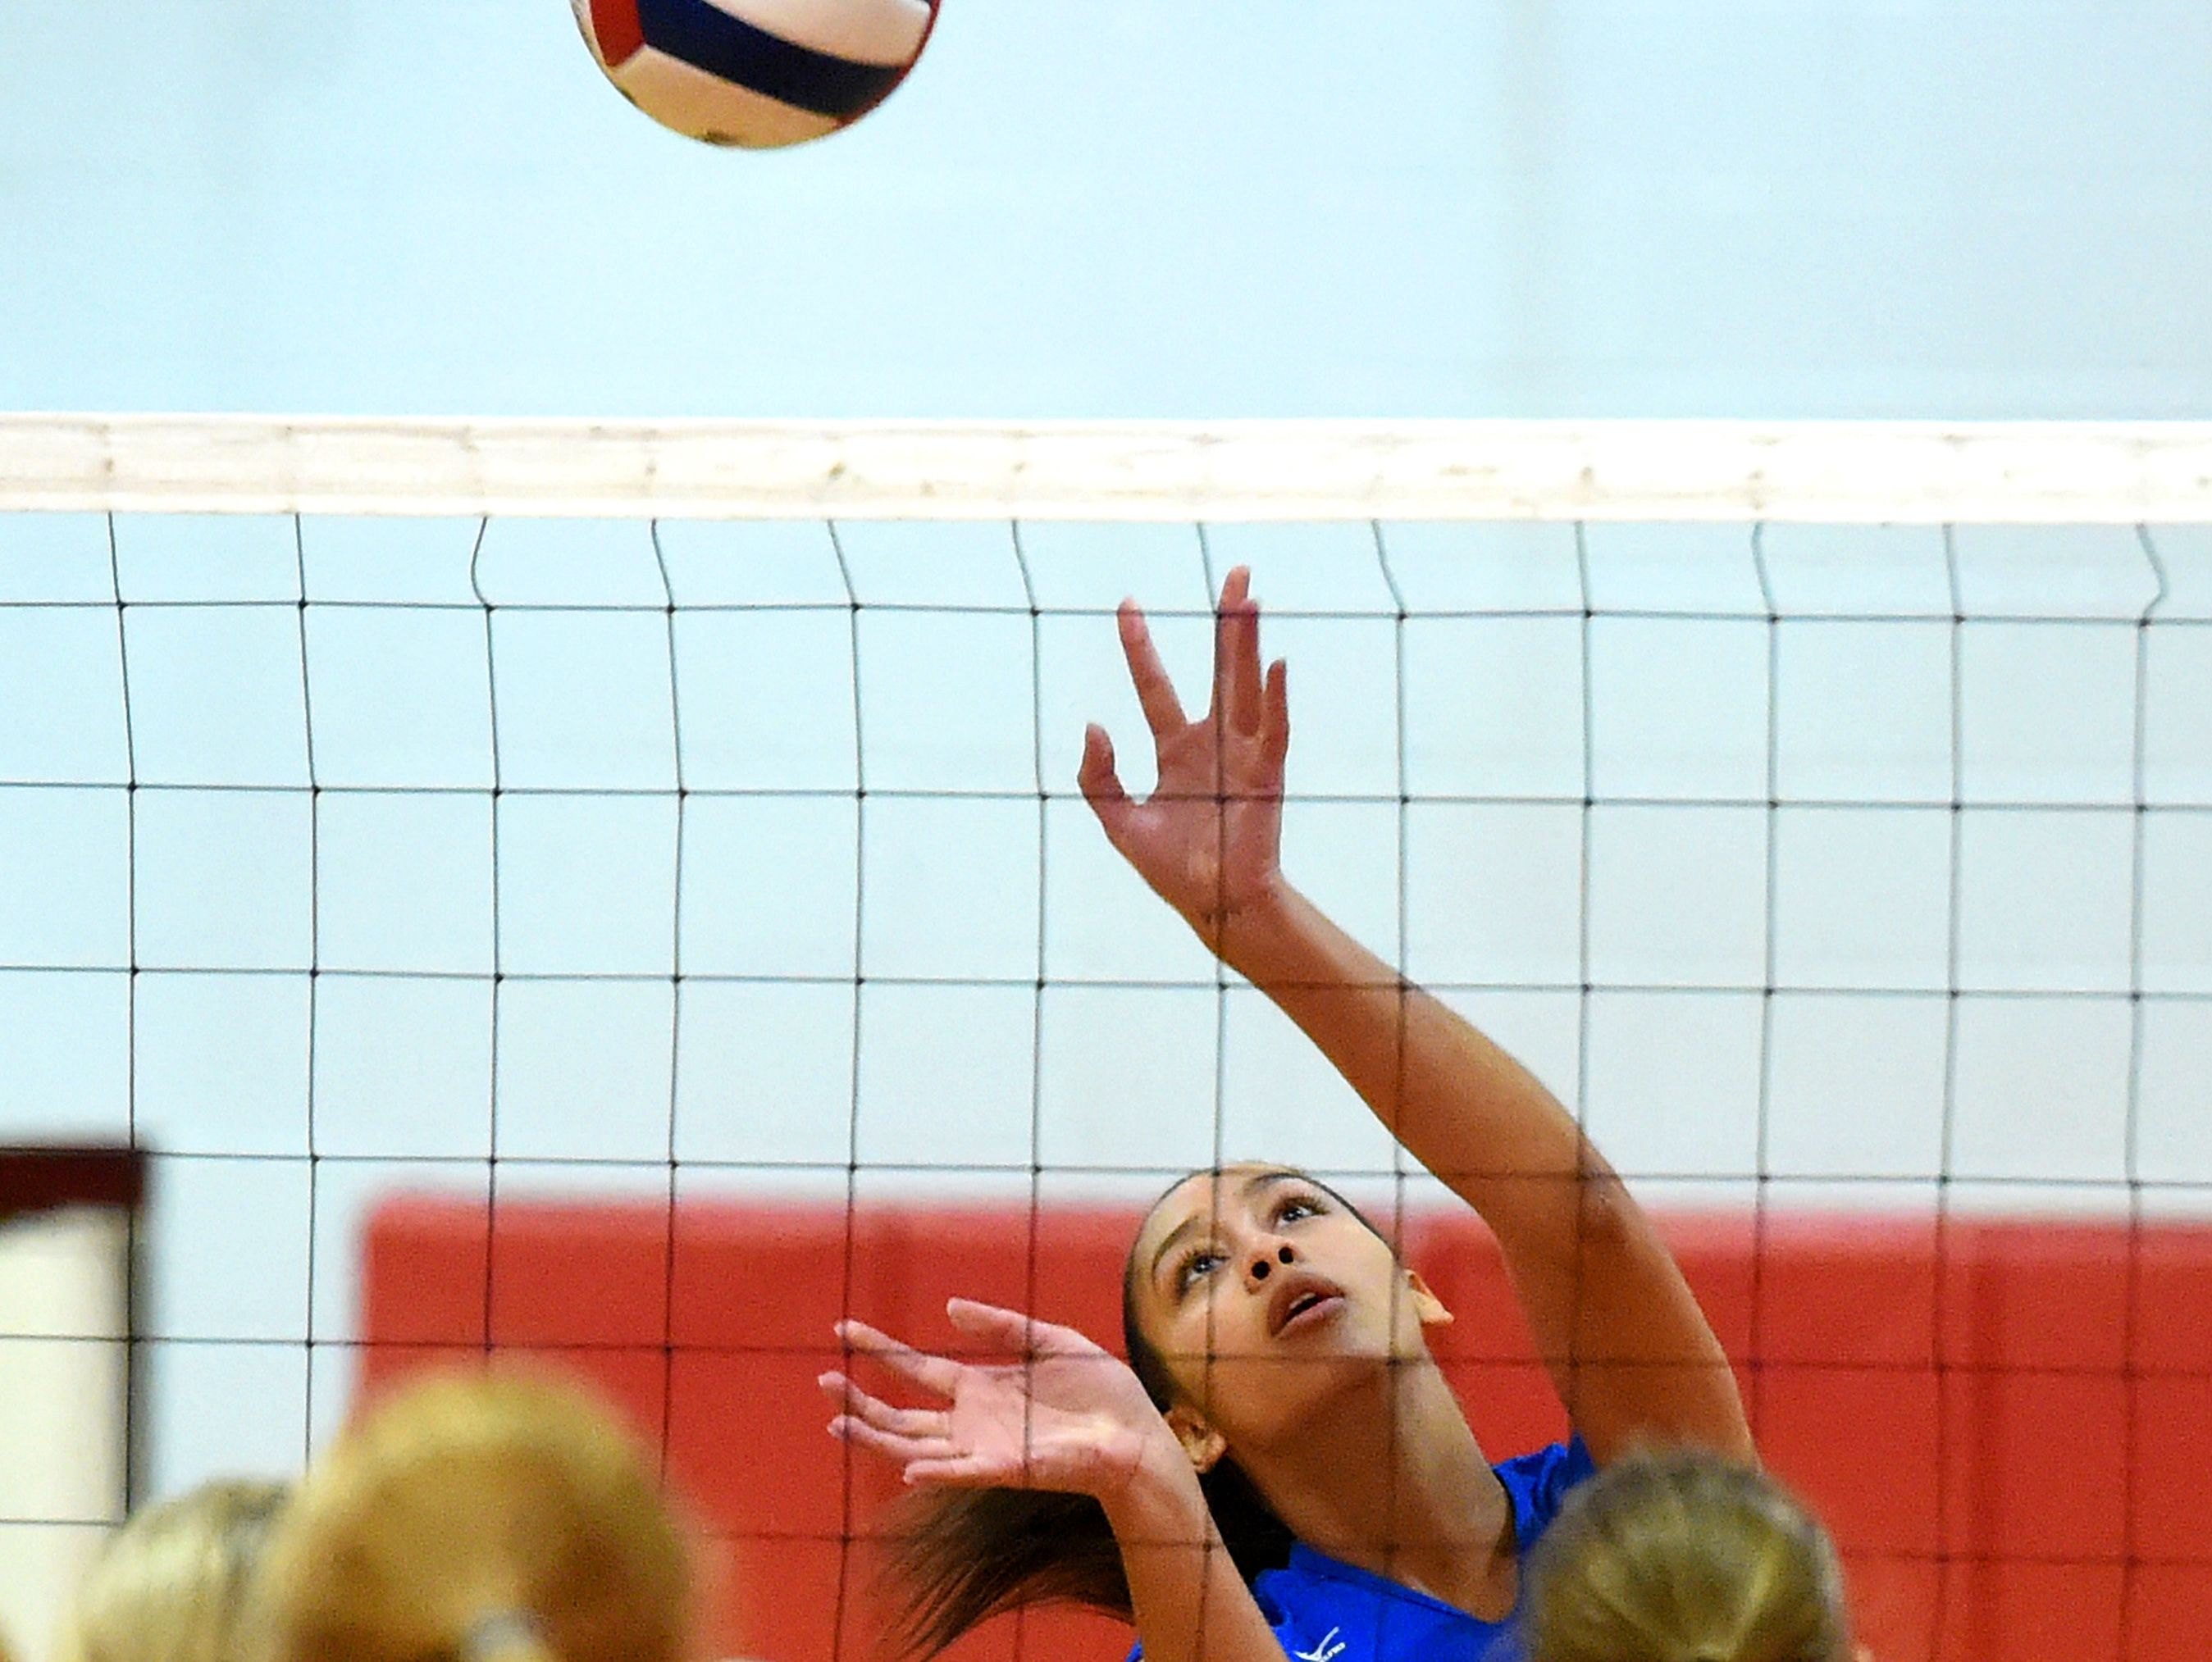 Fort Defiance's Jayden Beasley sets the ball during a volleyball match played in Greenville on Thursday, Sept. 9, 2016.